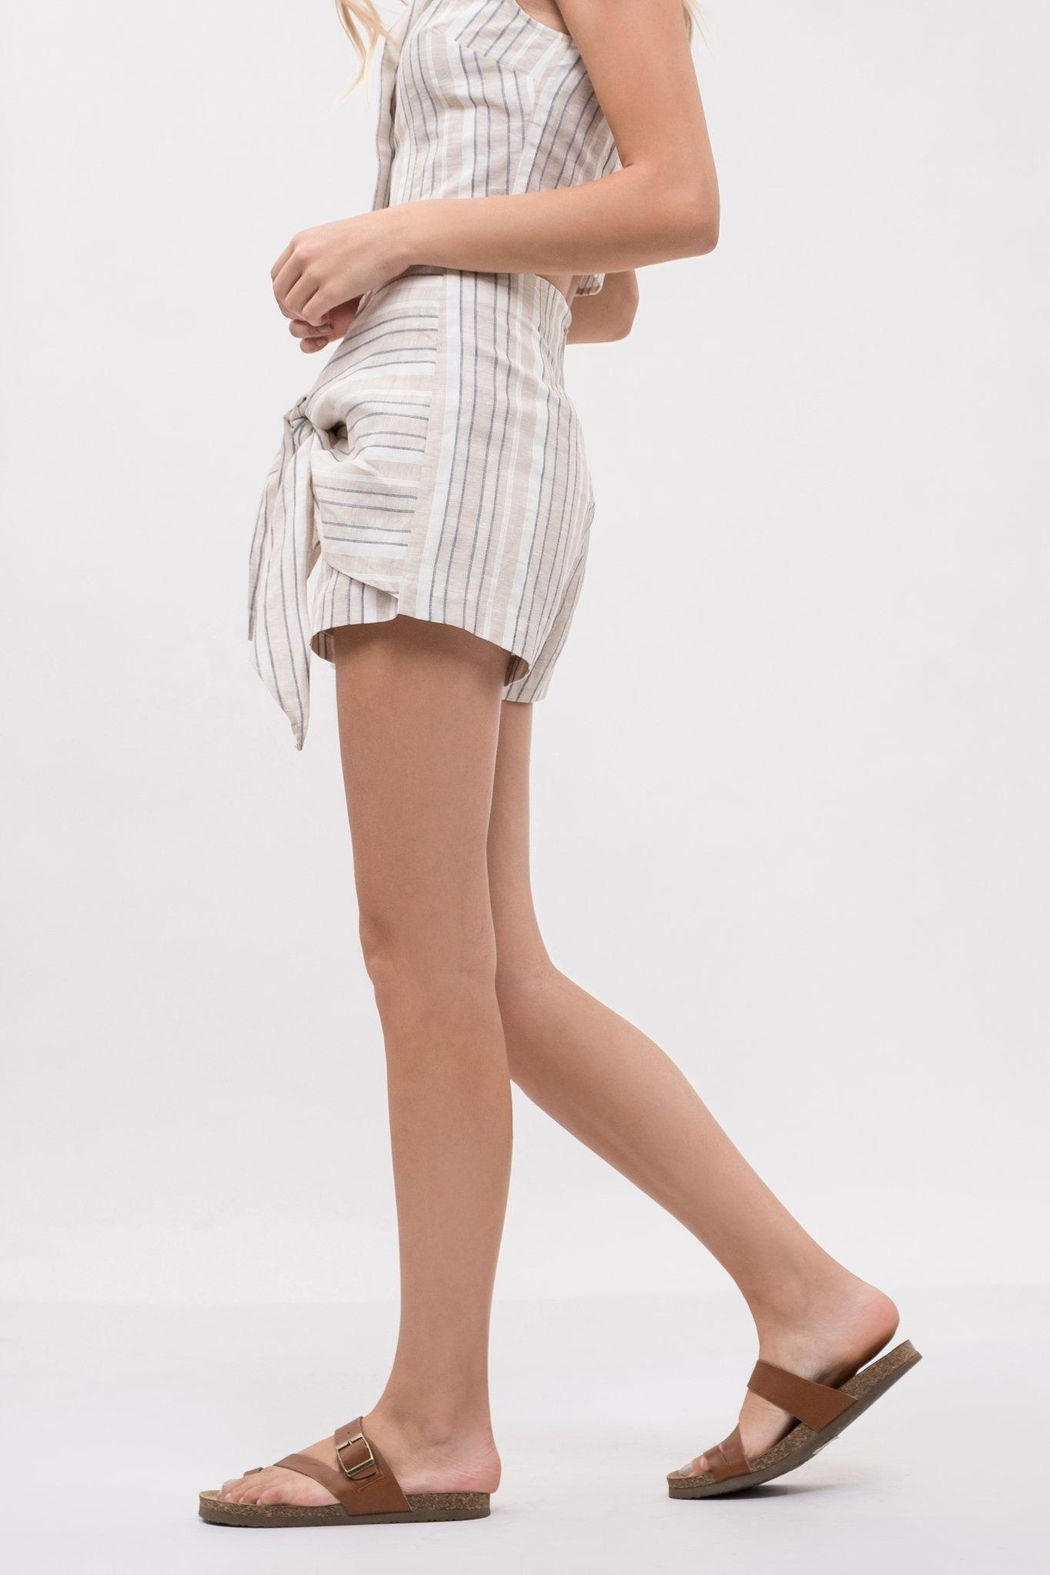 J.O.A. Tie Front Shorts - Side Cropped Image